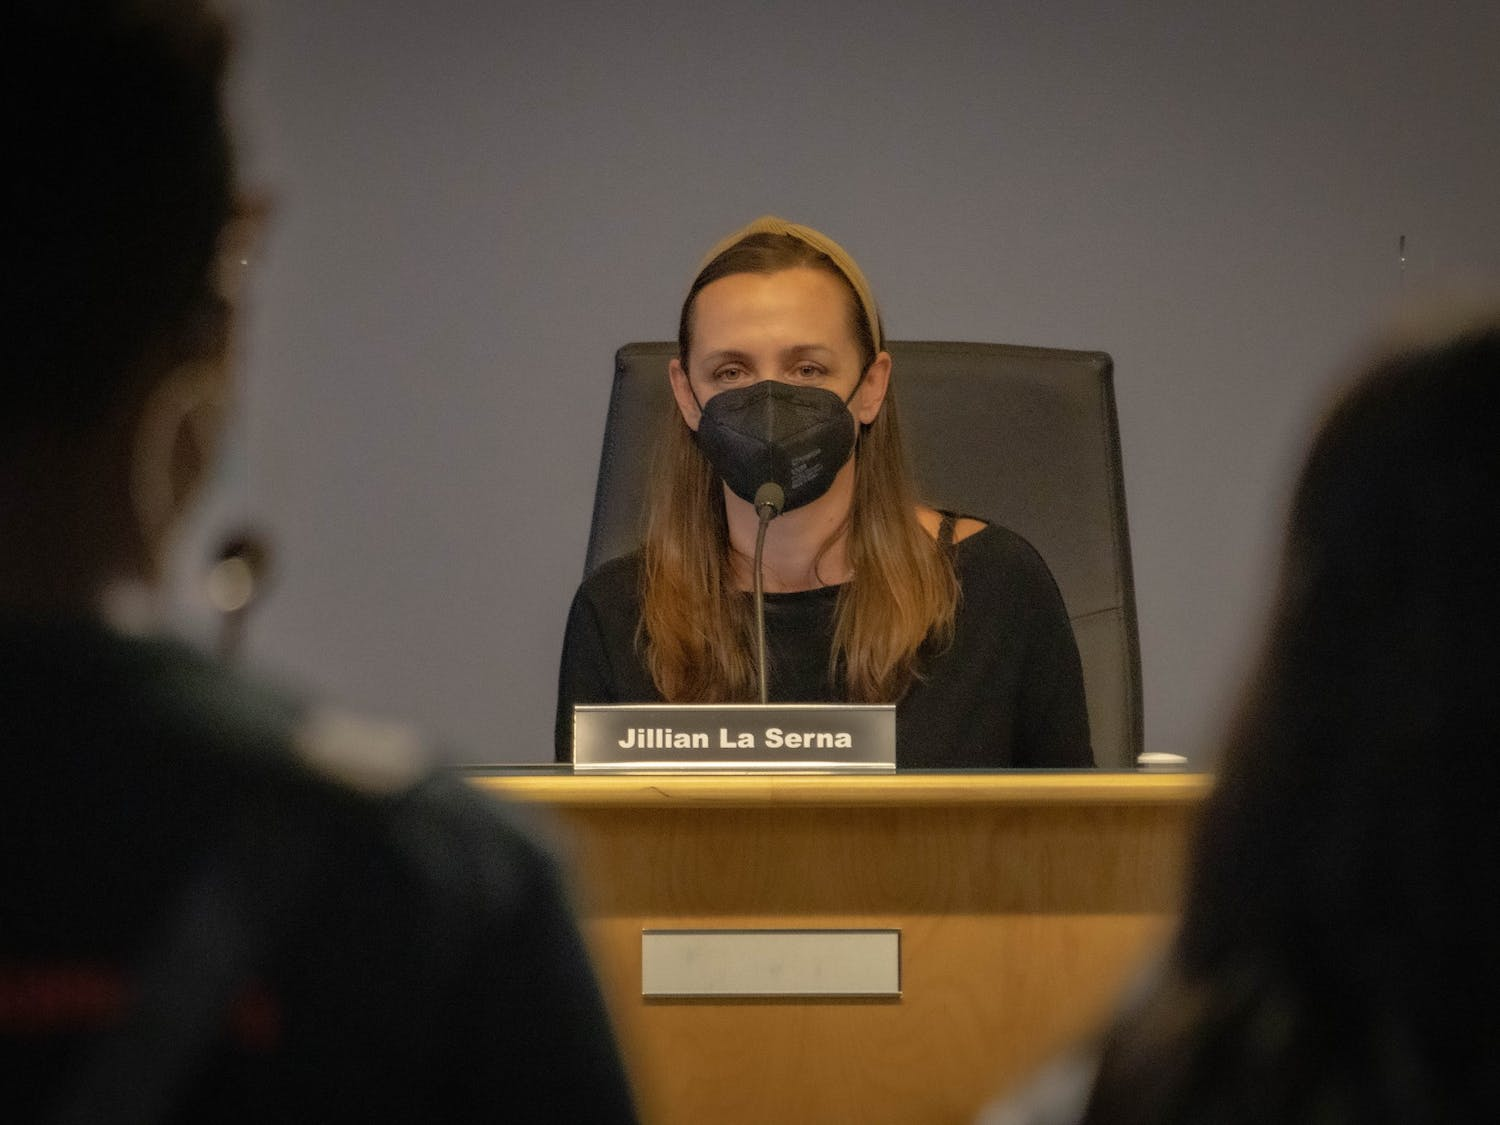 Jillian La Serna, chairperson of the Chapel Hill-Carrboro City Schools Board of Education, yields public comments at the board's August 12 meeting.